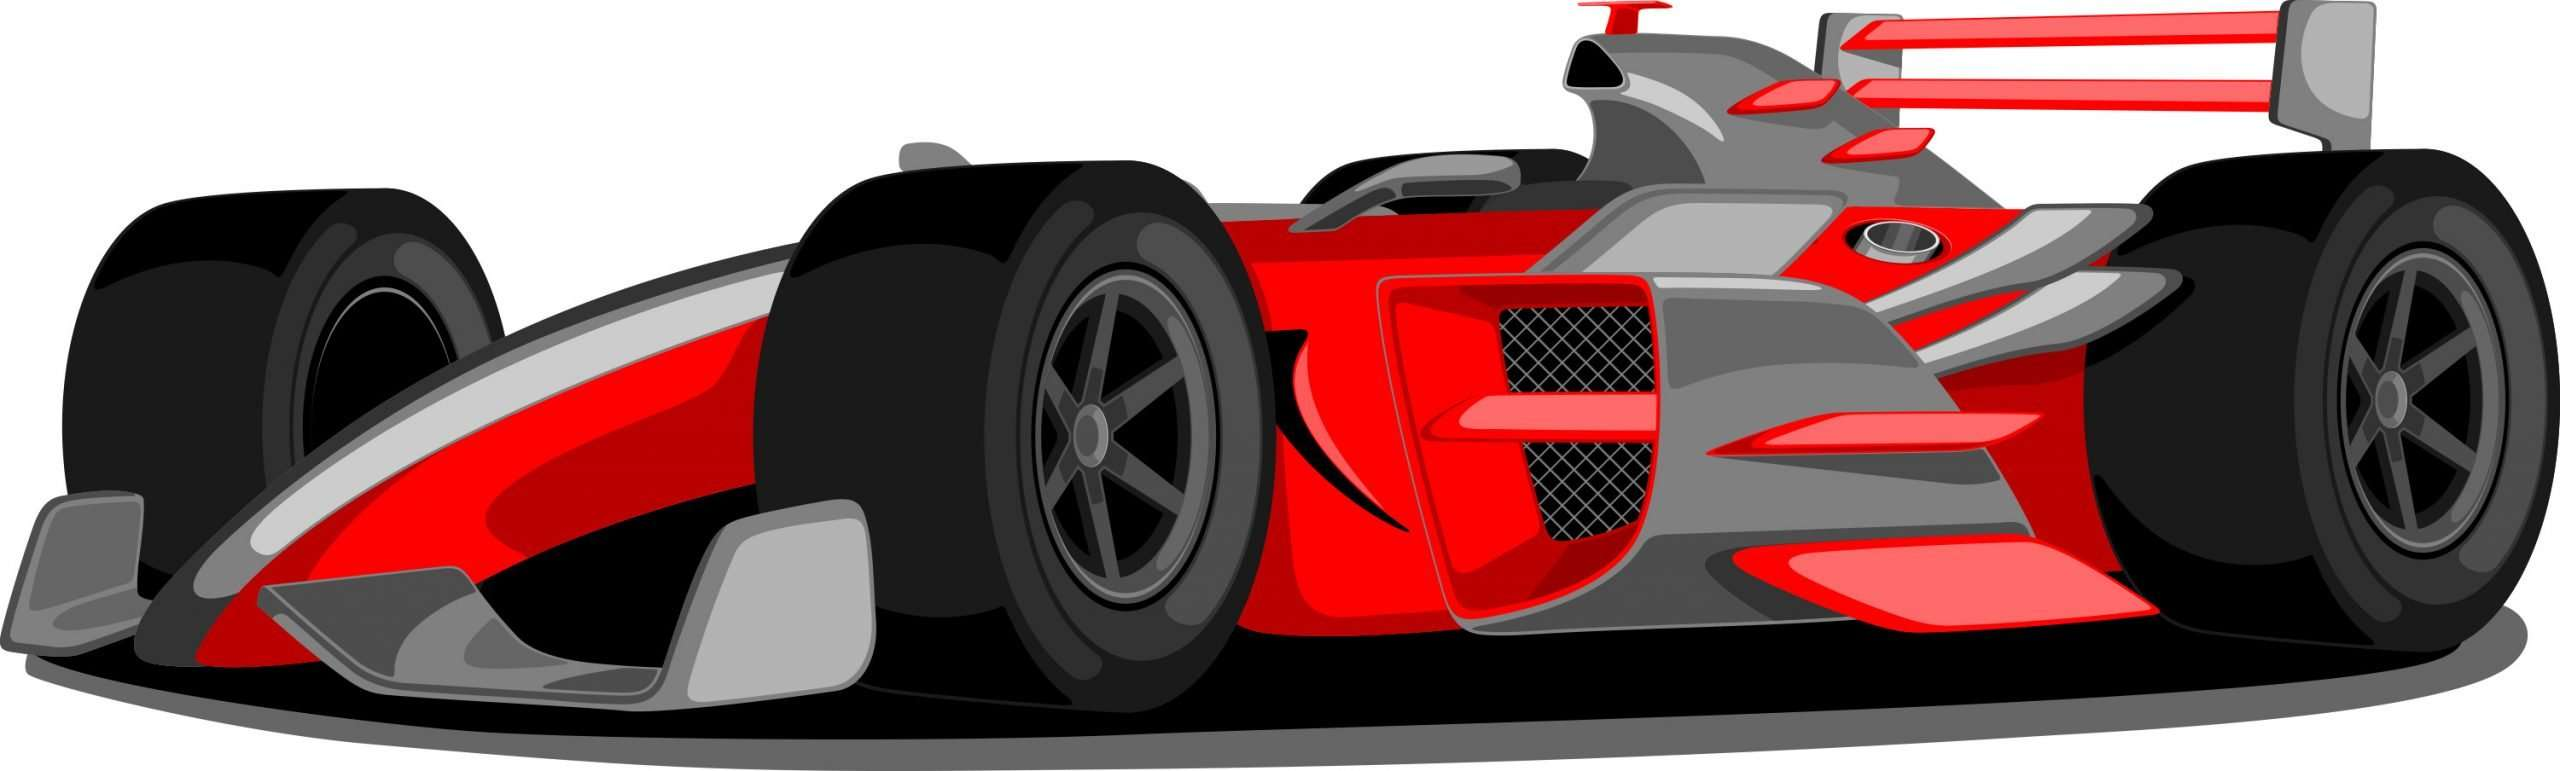 About Formula One Auto Racing